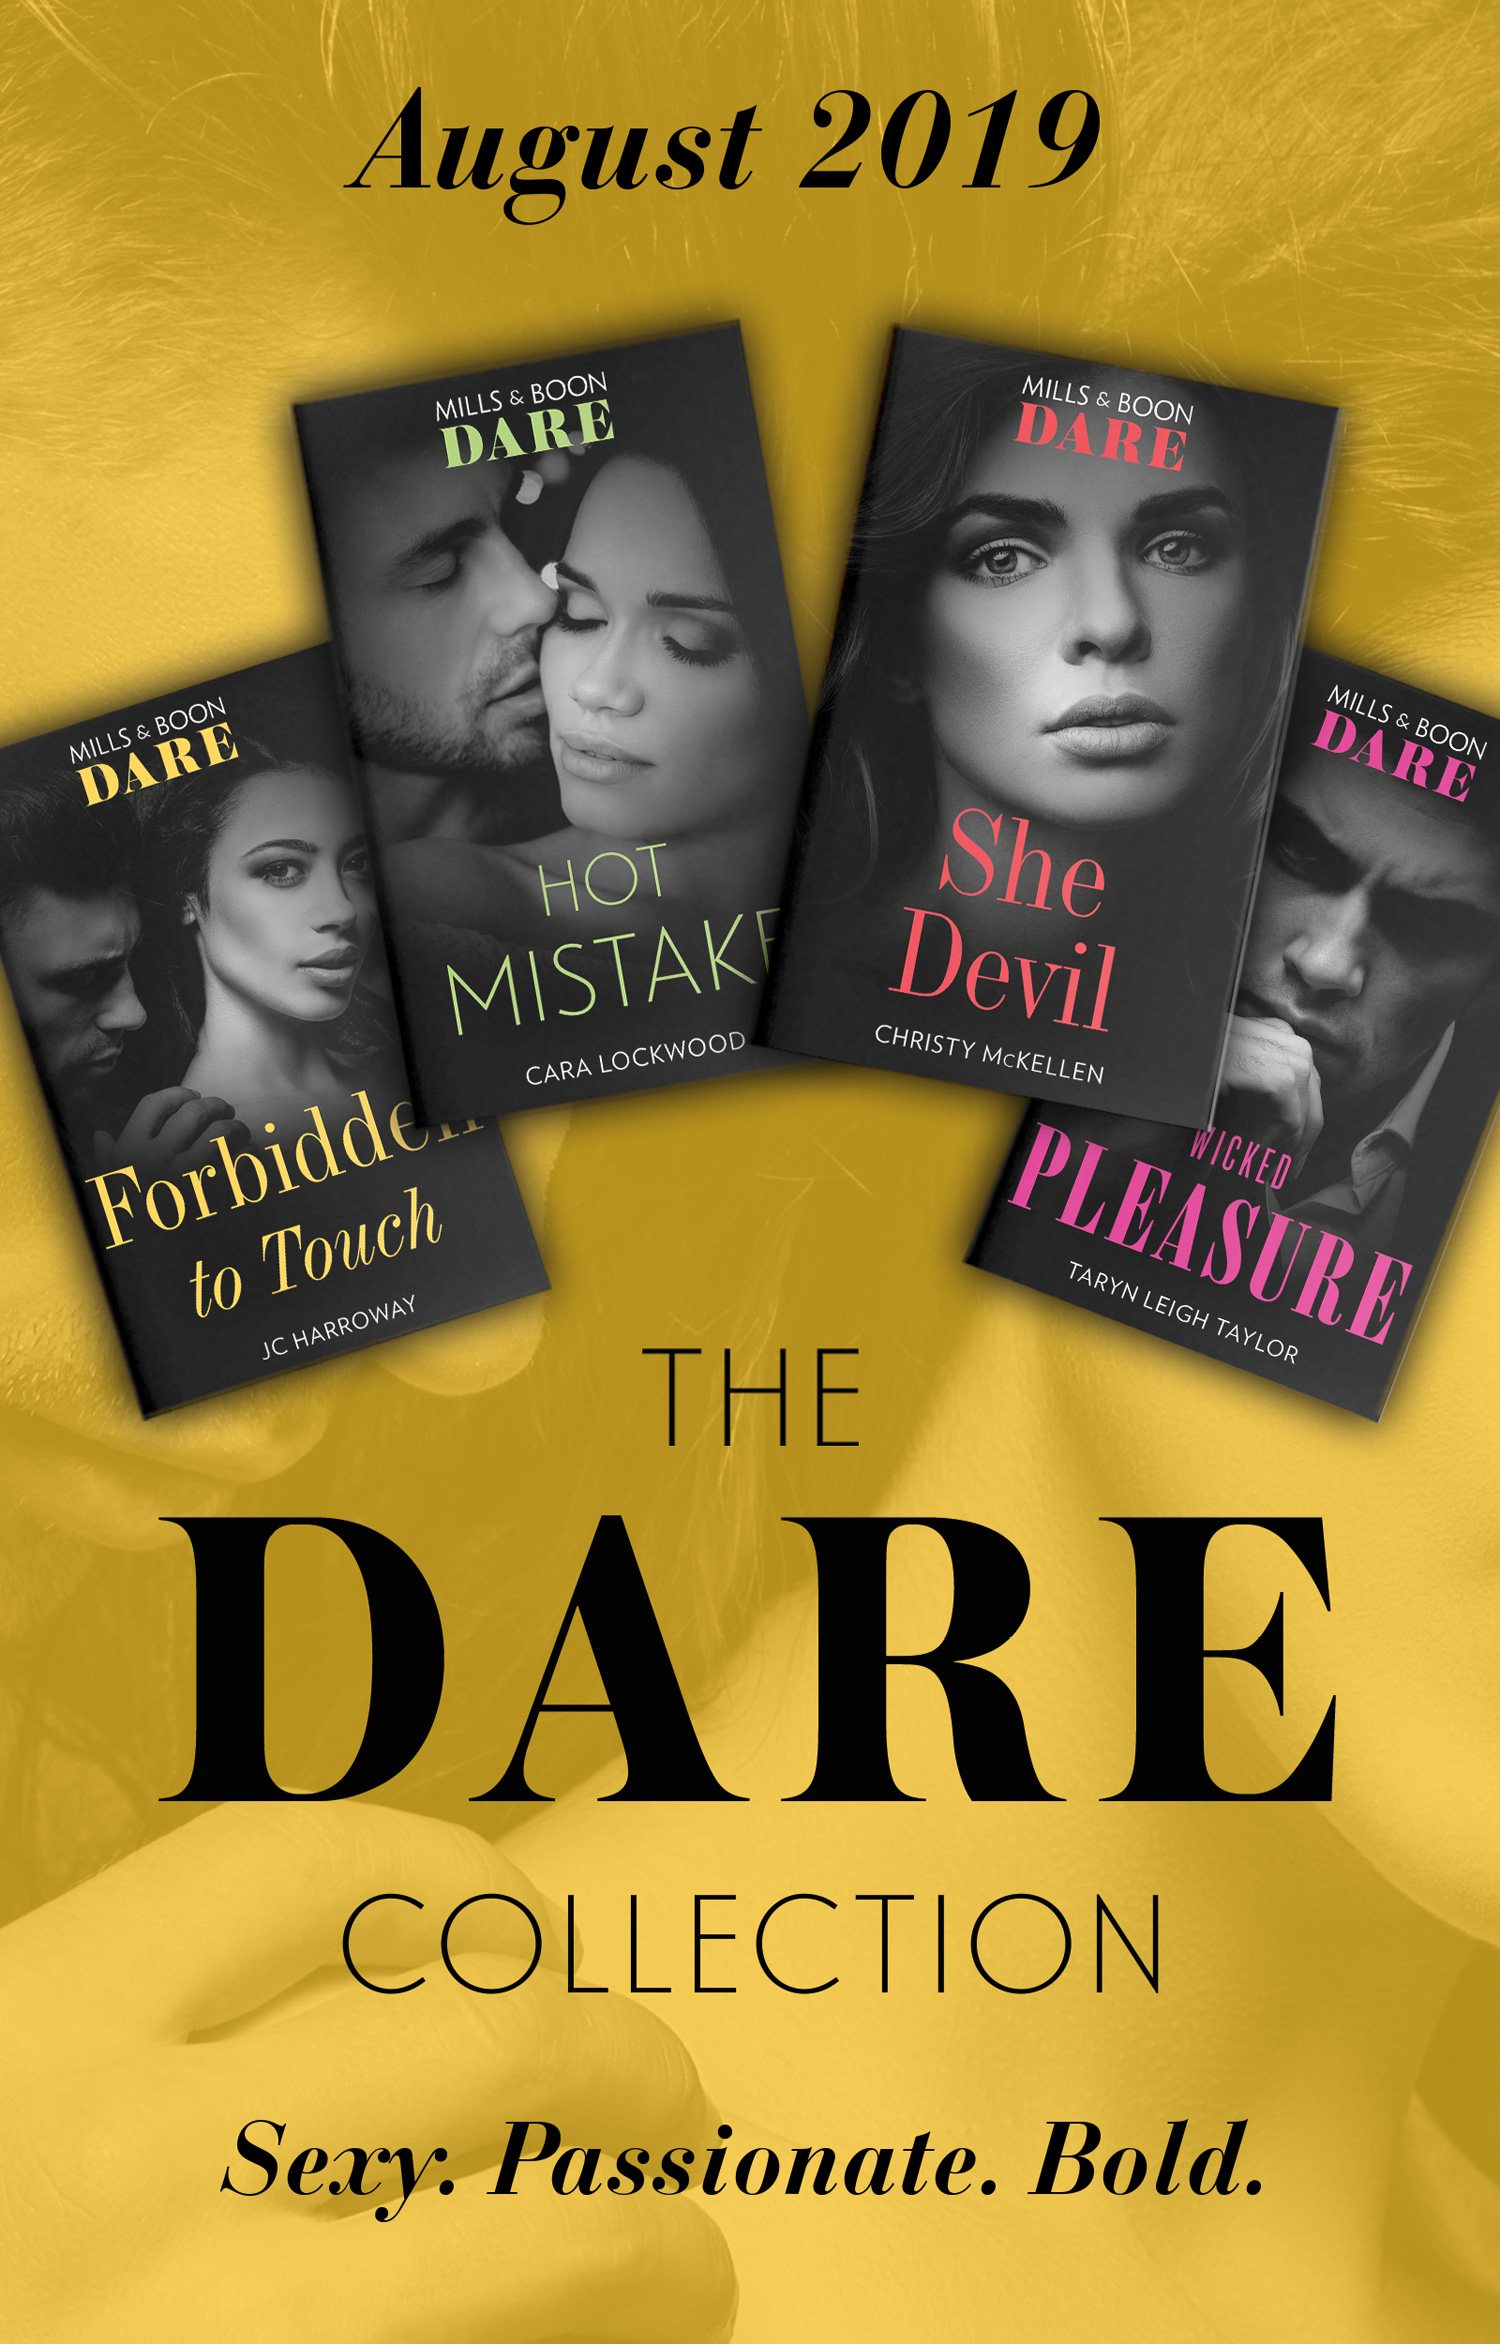 The Dare Collection August 2019